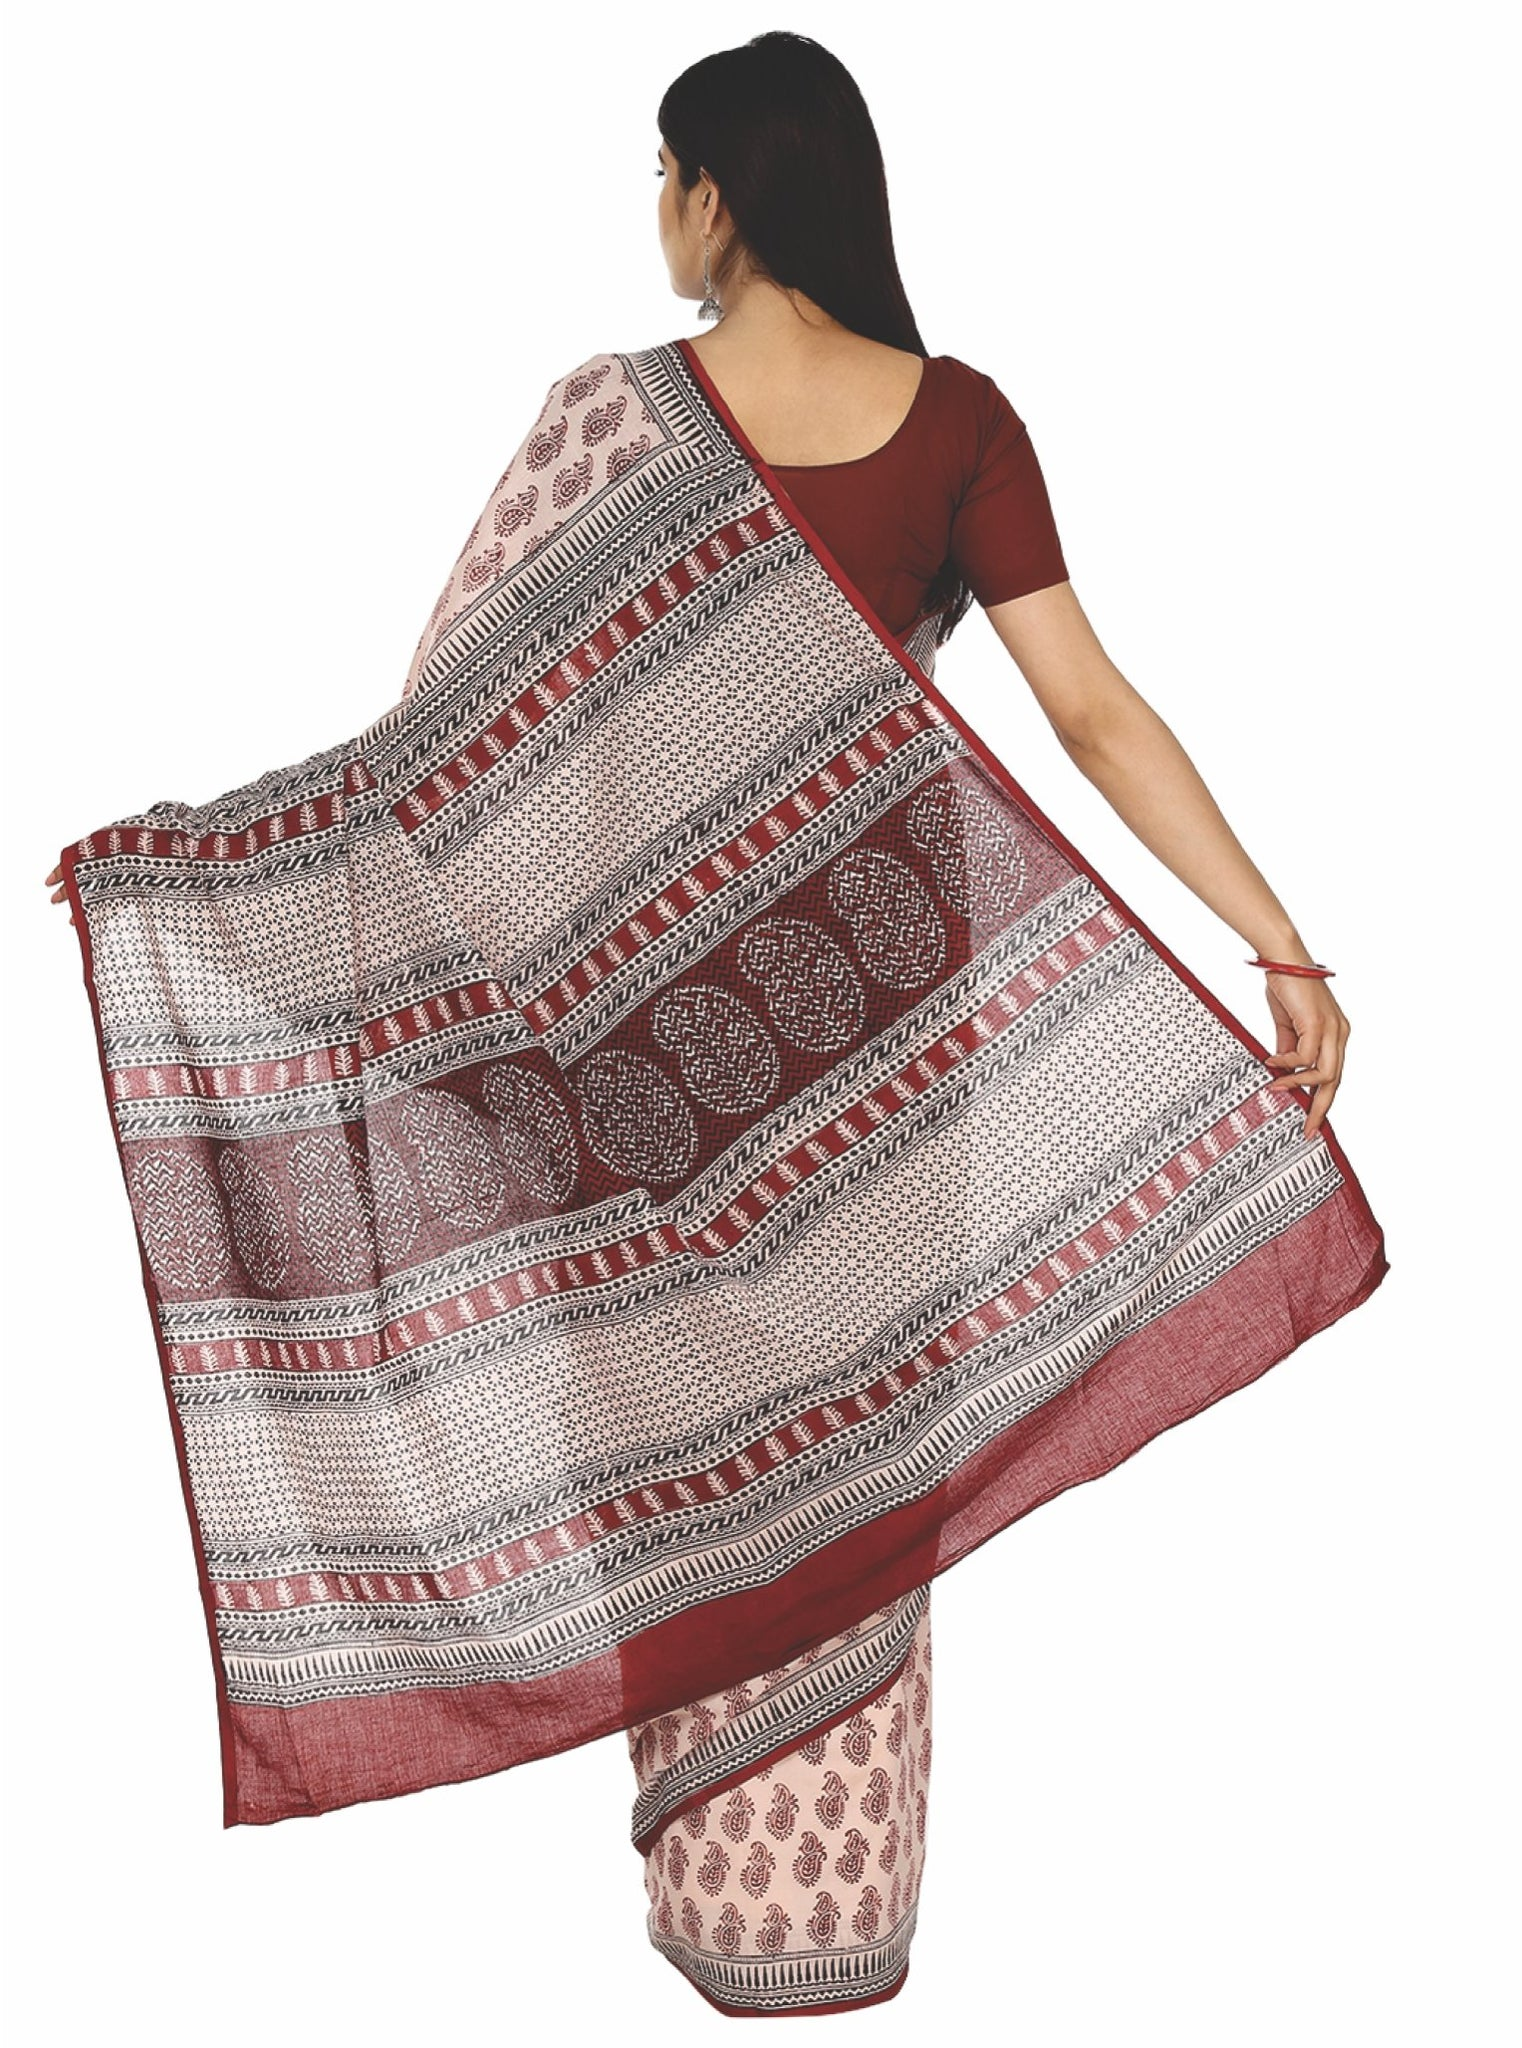 Off-White Cotton Handblock Bagh Print Handcrafted Saree-Saree-Kalakari India-ZIBASA0030-Bagh, Cotton, Geographical Indication, Hand Blocks, Hand Crafted, Heritage Prints, Natural Dyes, Sarees, Sustainable Fabrics-[Linen,Ethnic,wear,Fashionista,Handloom,Handicraft,Indigo,blockprint,block,print,Cotton,Chanderi,Blue, latest,classy,party,bollywood,trendy,summer,style,traditional,formal,elegant,unique,style,hand,block,print, dabu,booti,gift,present,glamorous,affordable,collectible,Sari,Saree,printed,